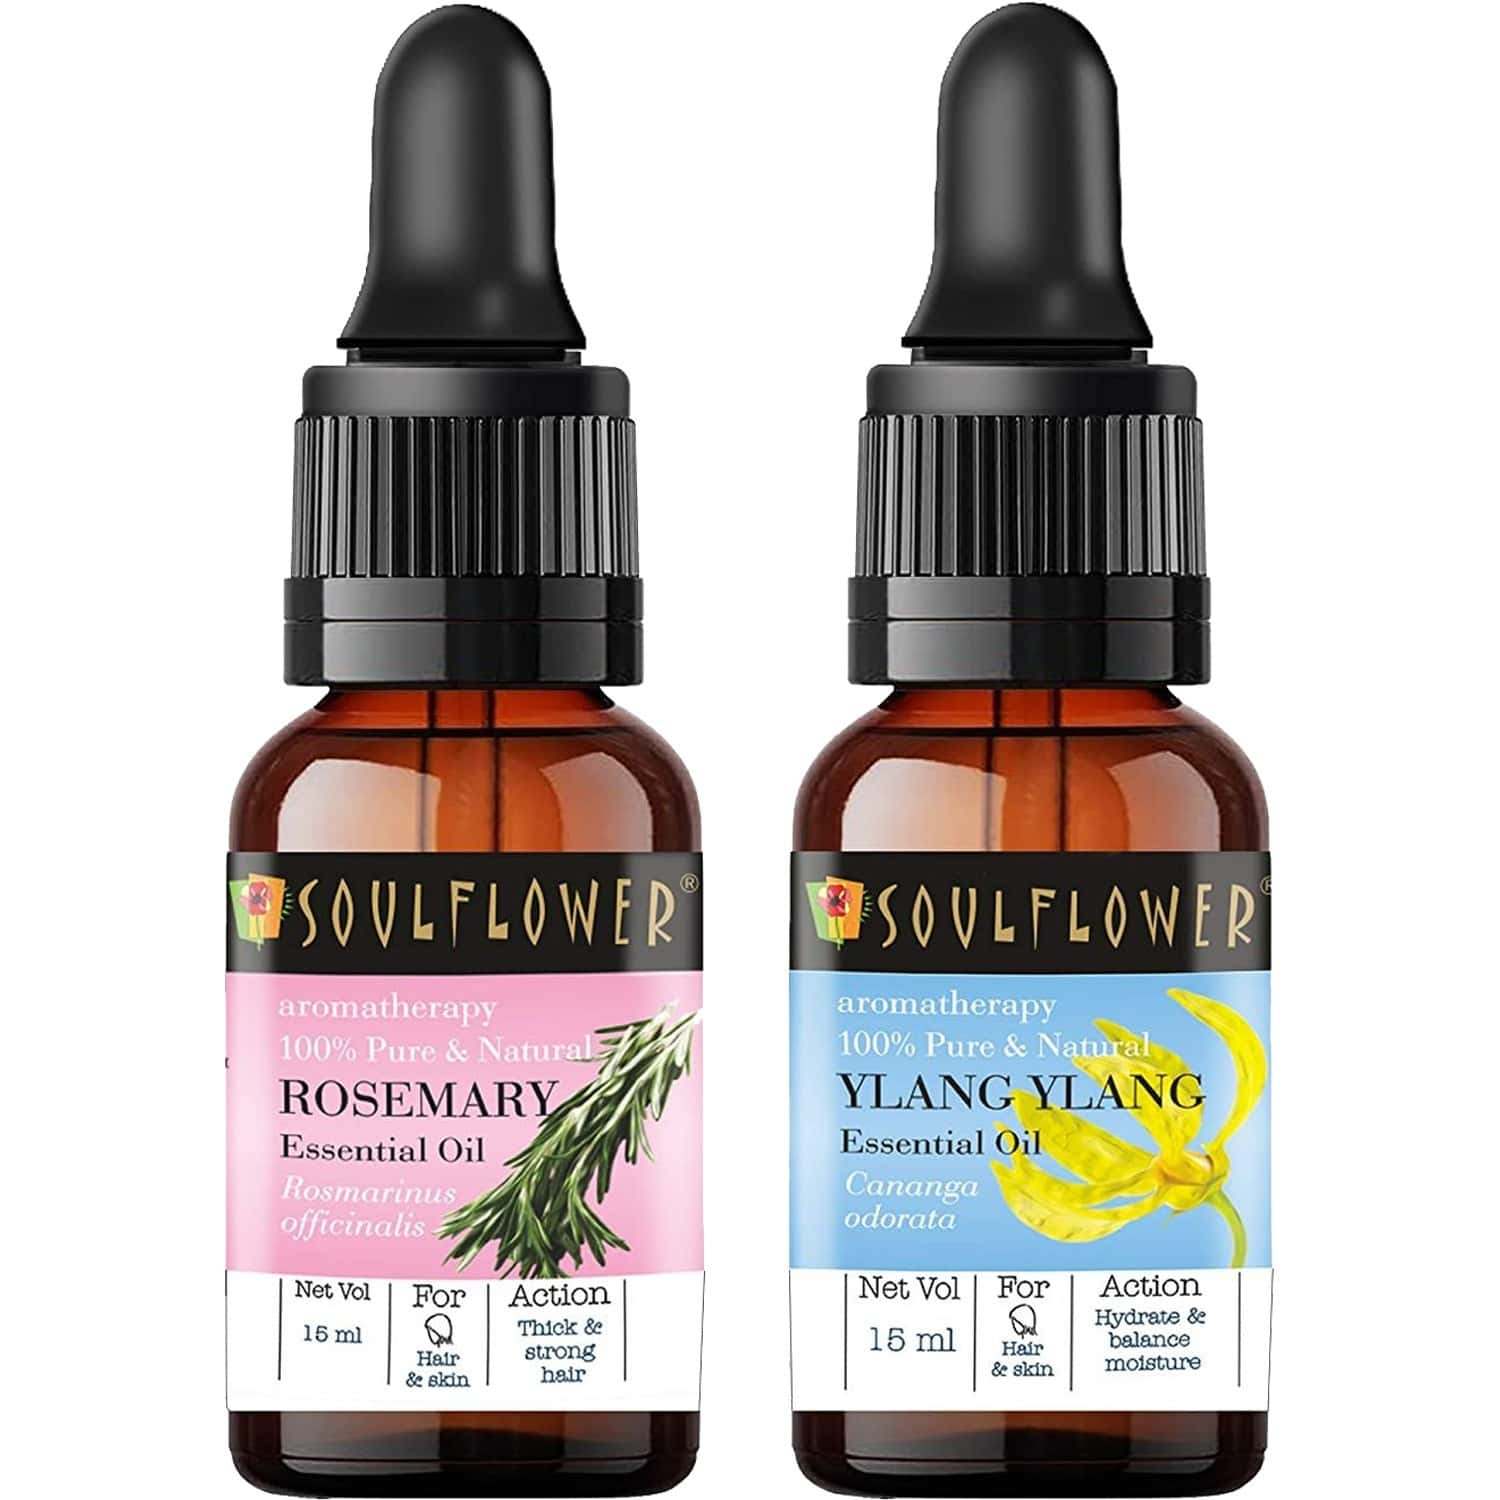 Soulflower Essential Oil Rosemary (15ml) And Ylang Ylang 100% Pure Natural And Undiluted Oil (15ml) For Skin, Face And Hair With Free Dropper